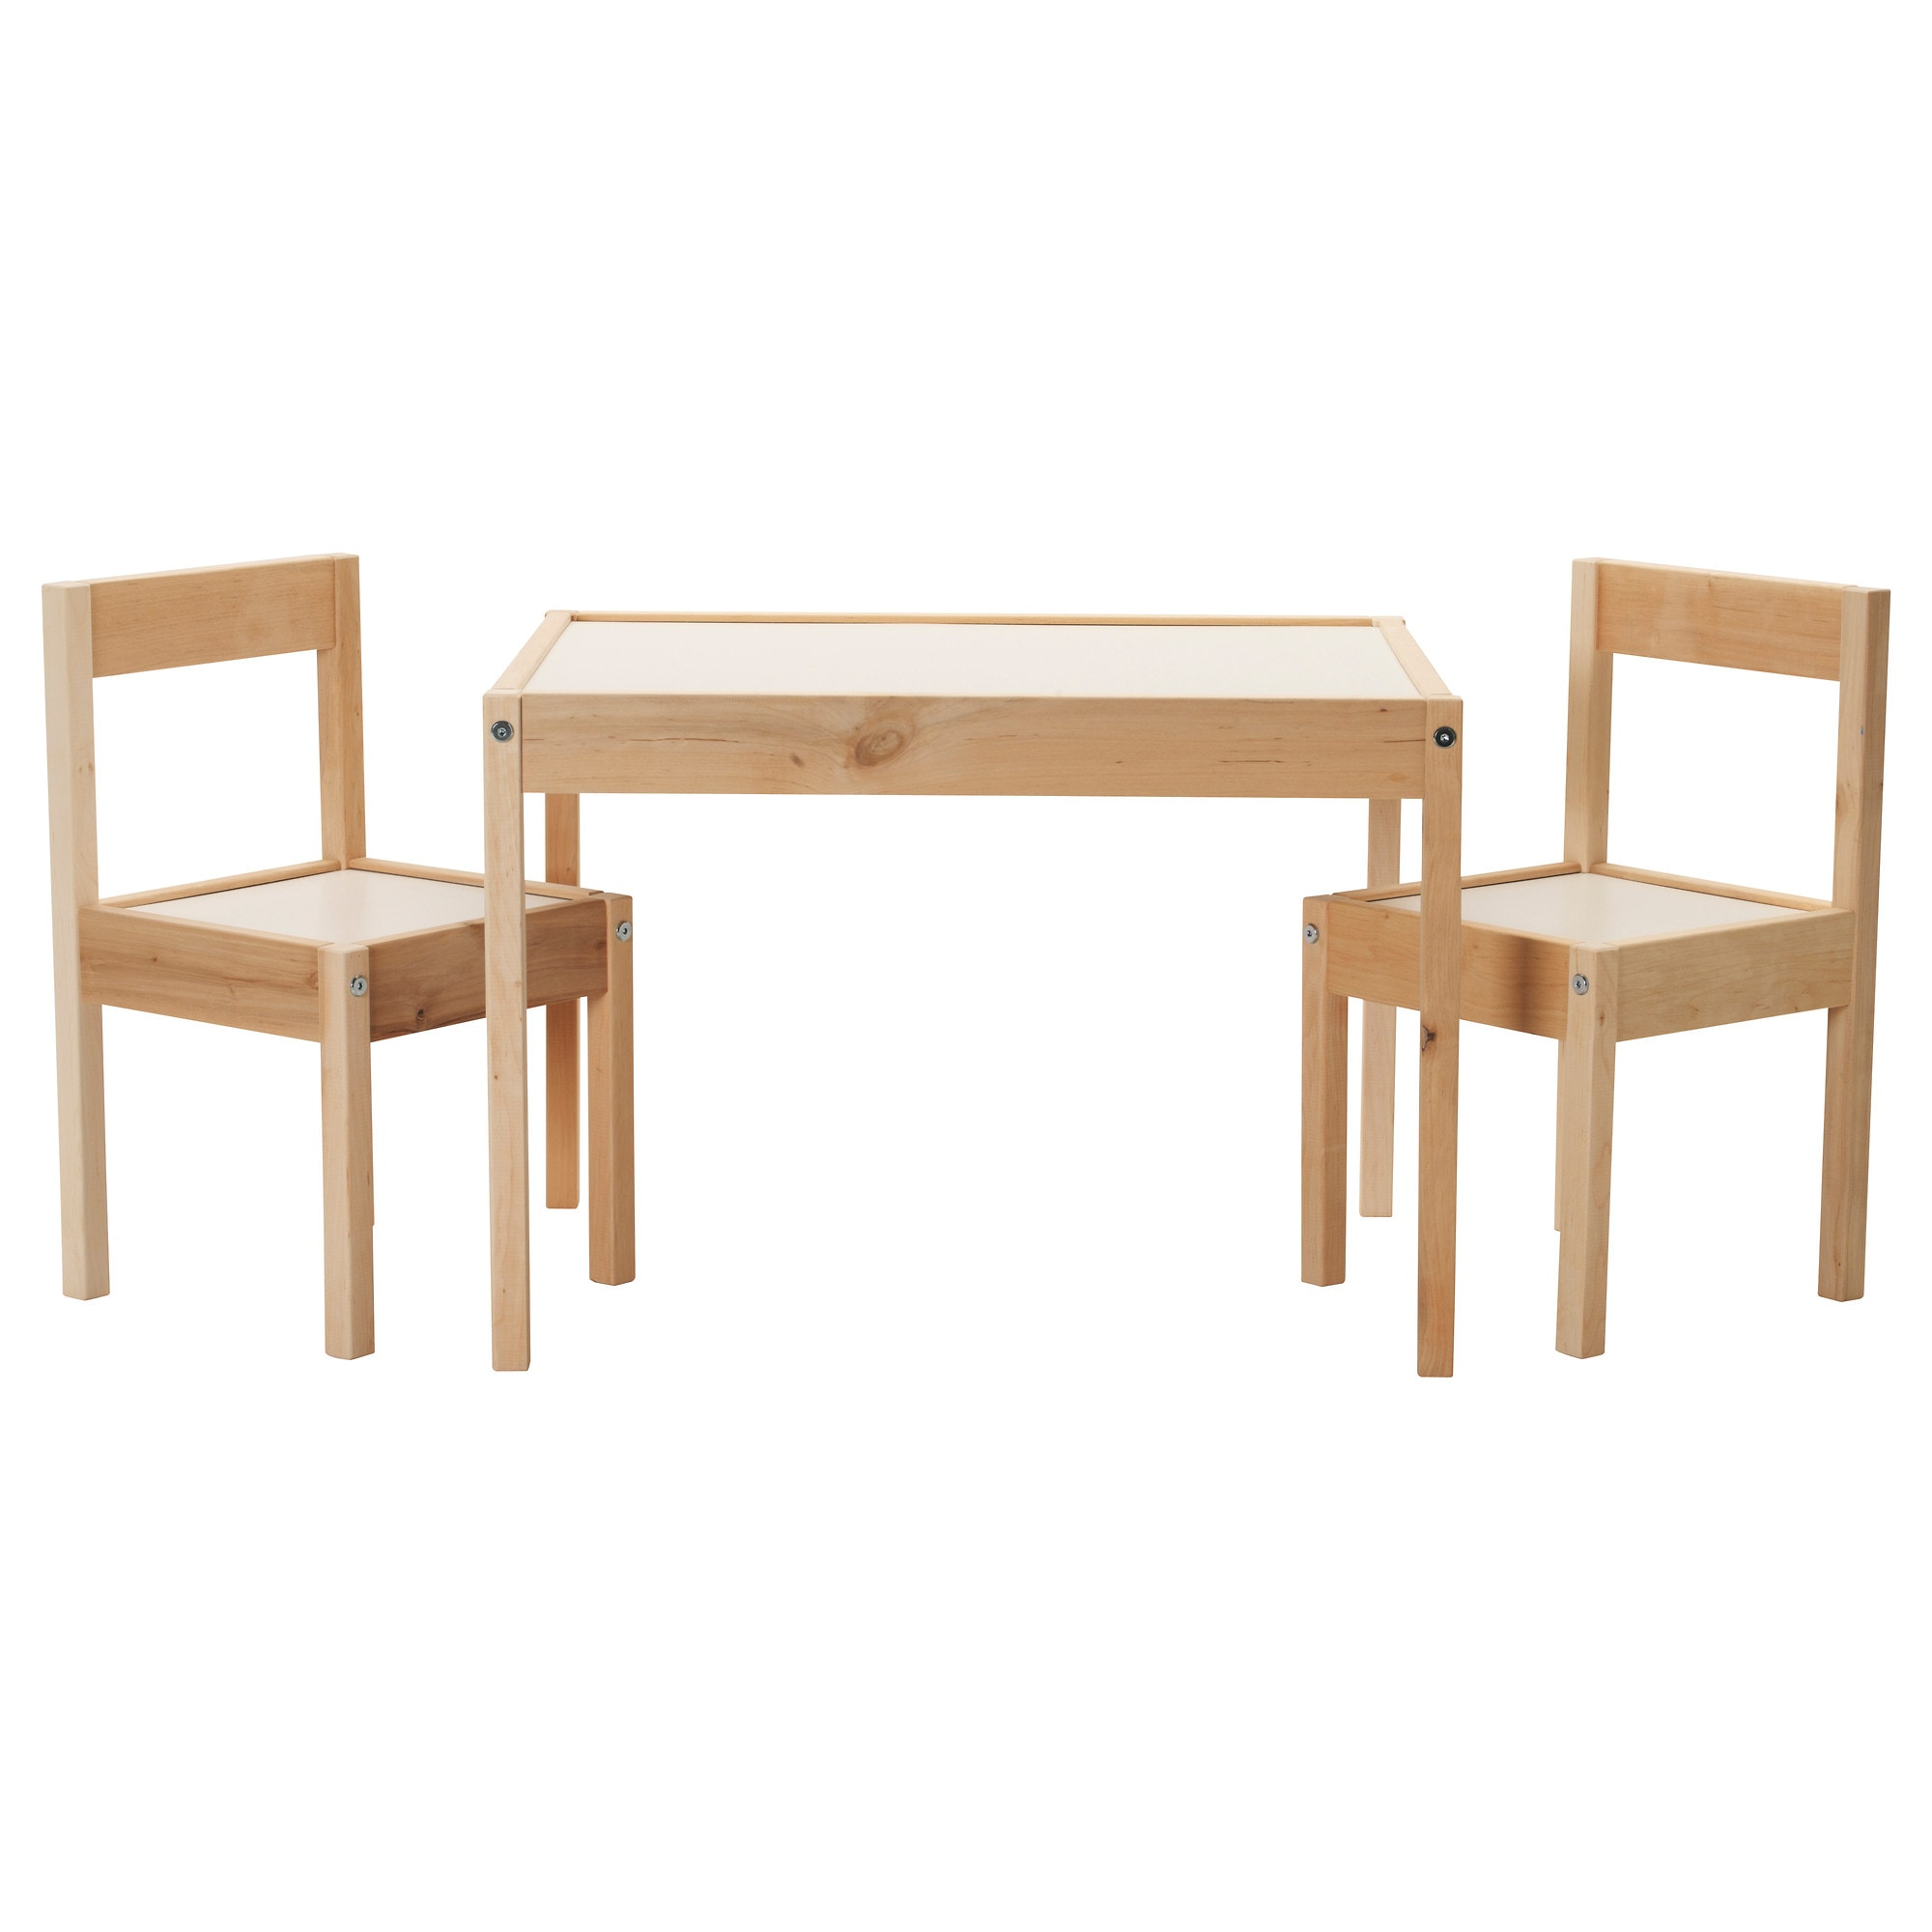 ltt table and 2 chairs white pine table length 24 3